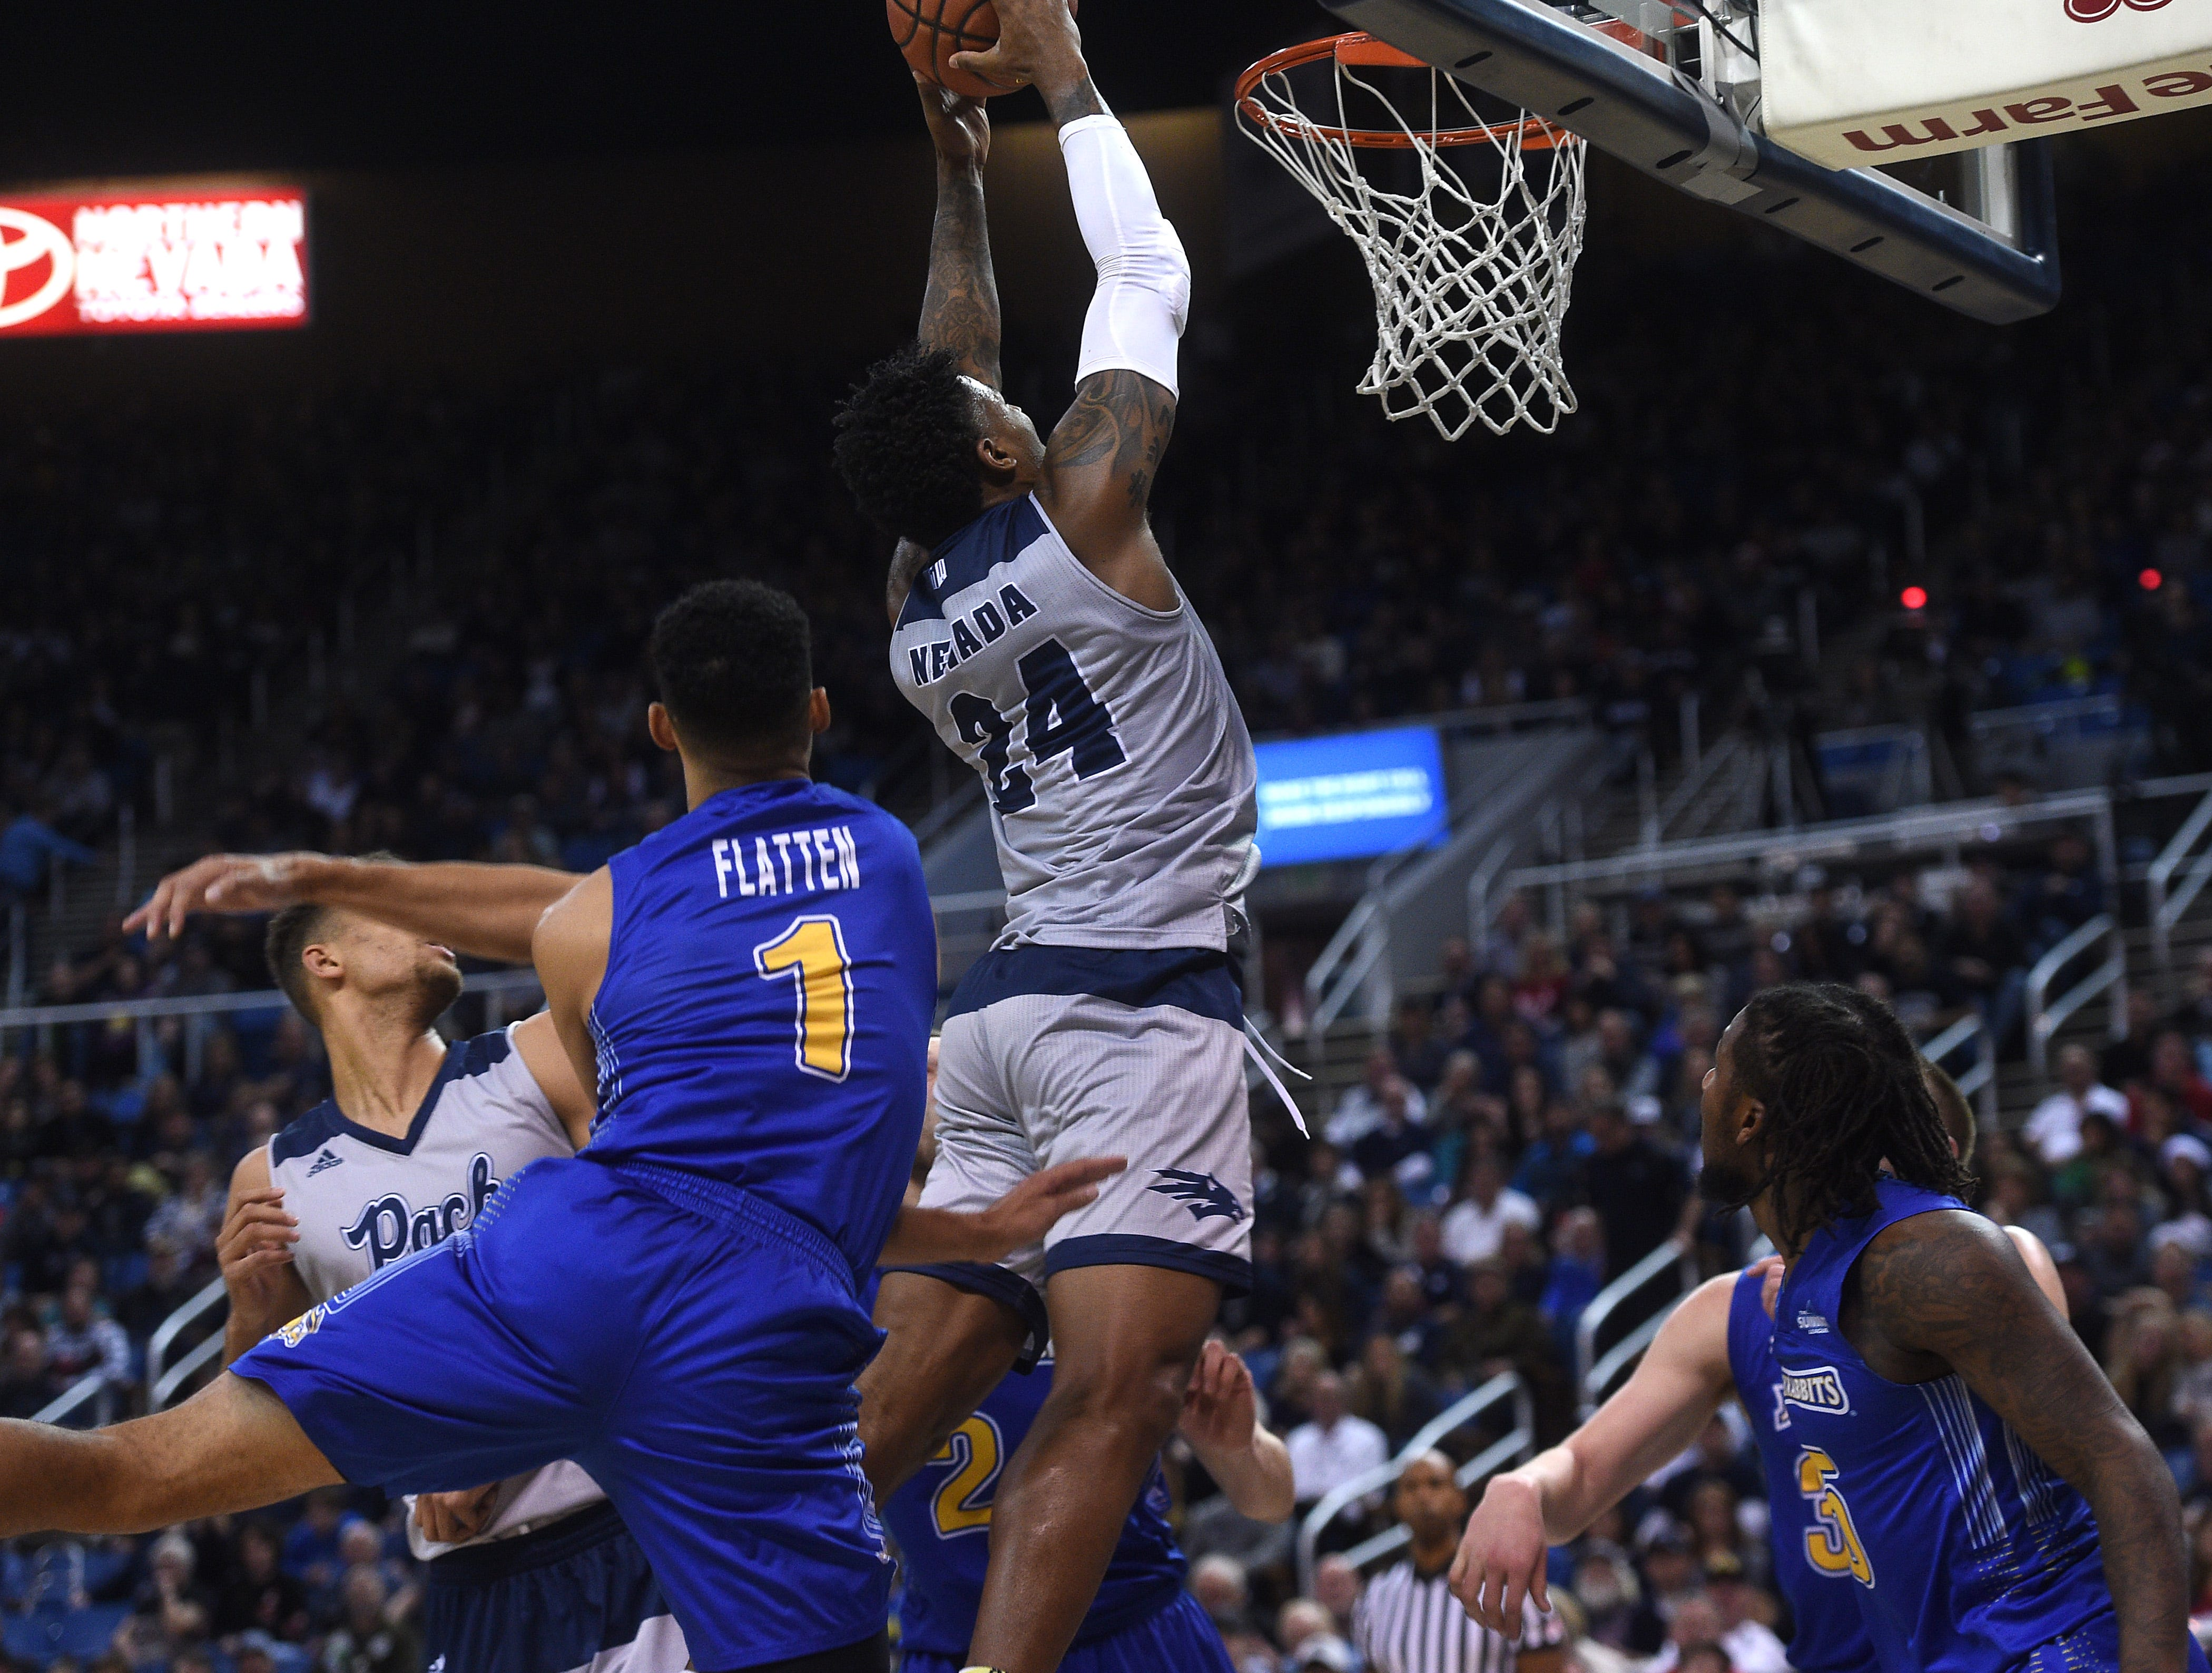 Nevada's Jordan Caroline dunks while taking on South Dakota State during their basketball game at Lawlor Events Center in Reno on Dec. 15, 2018.